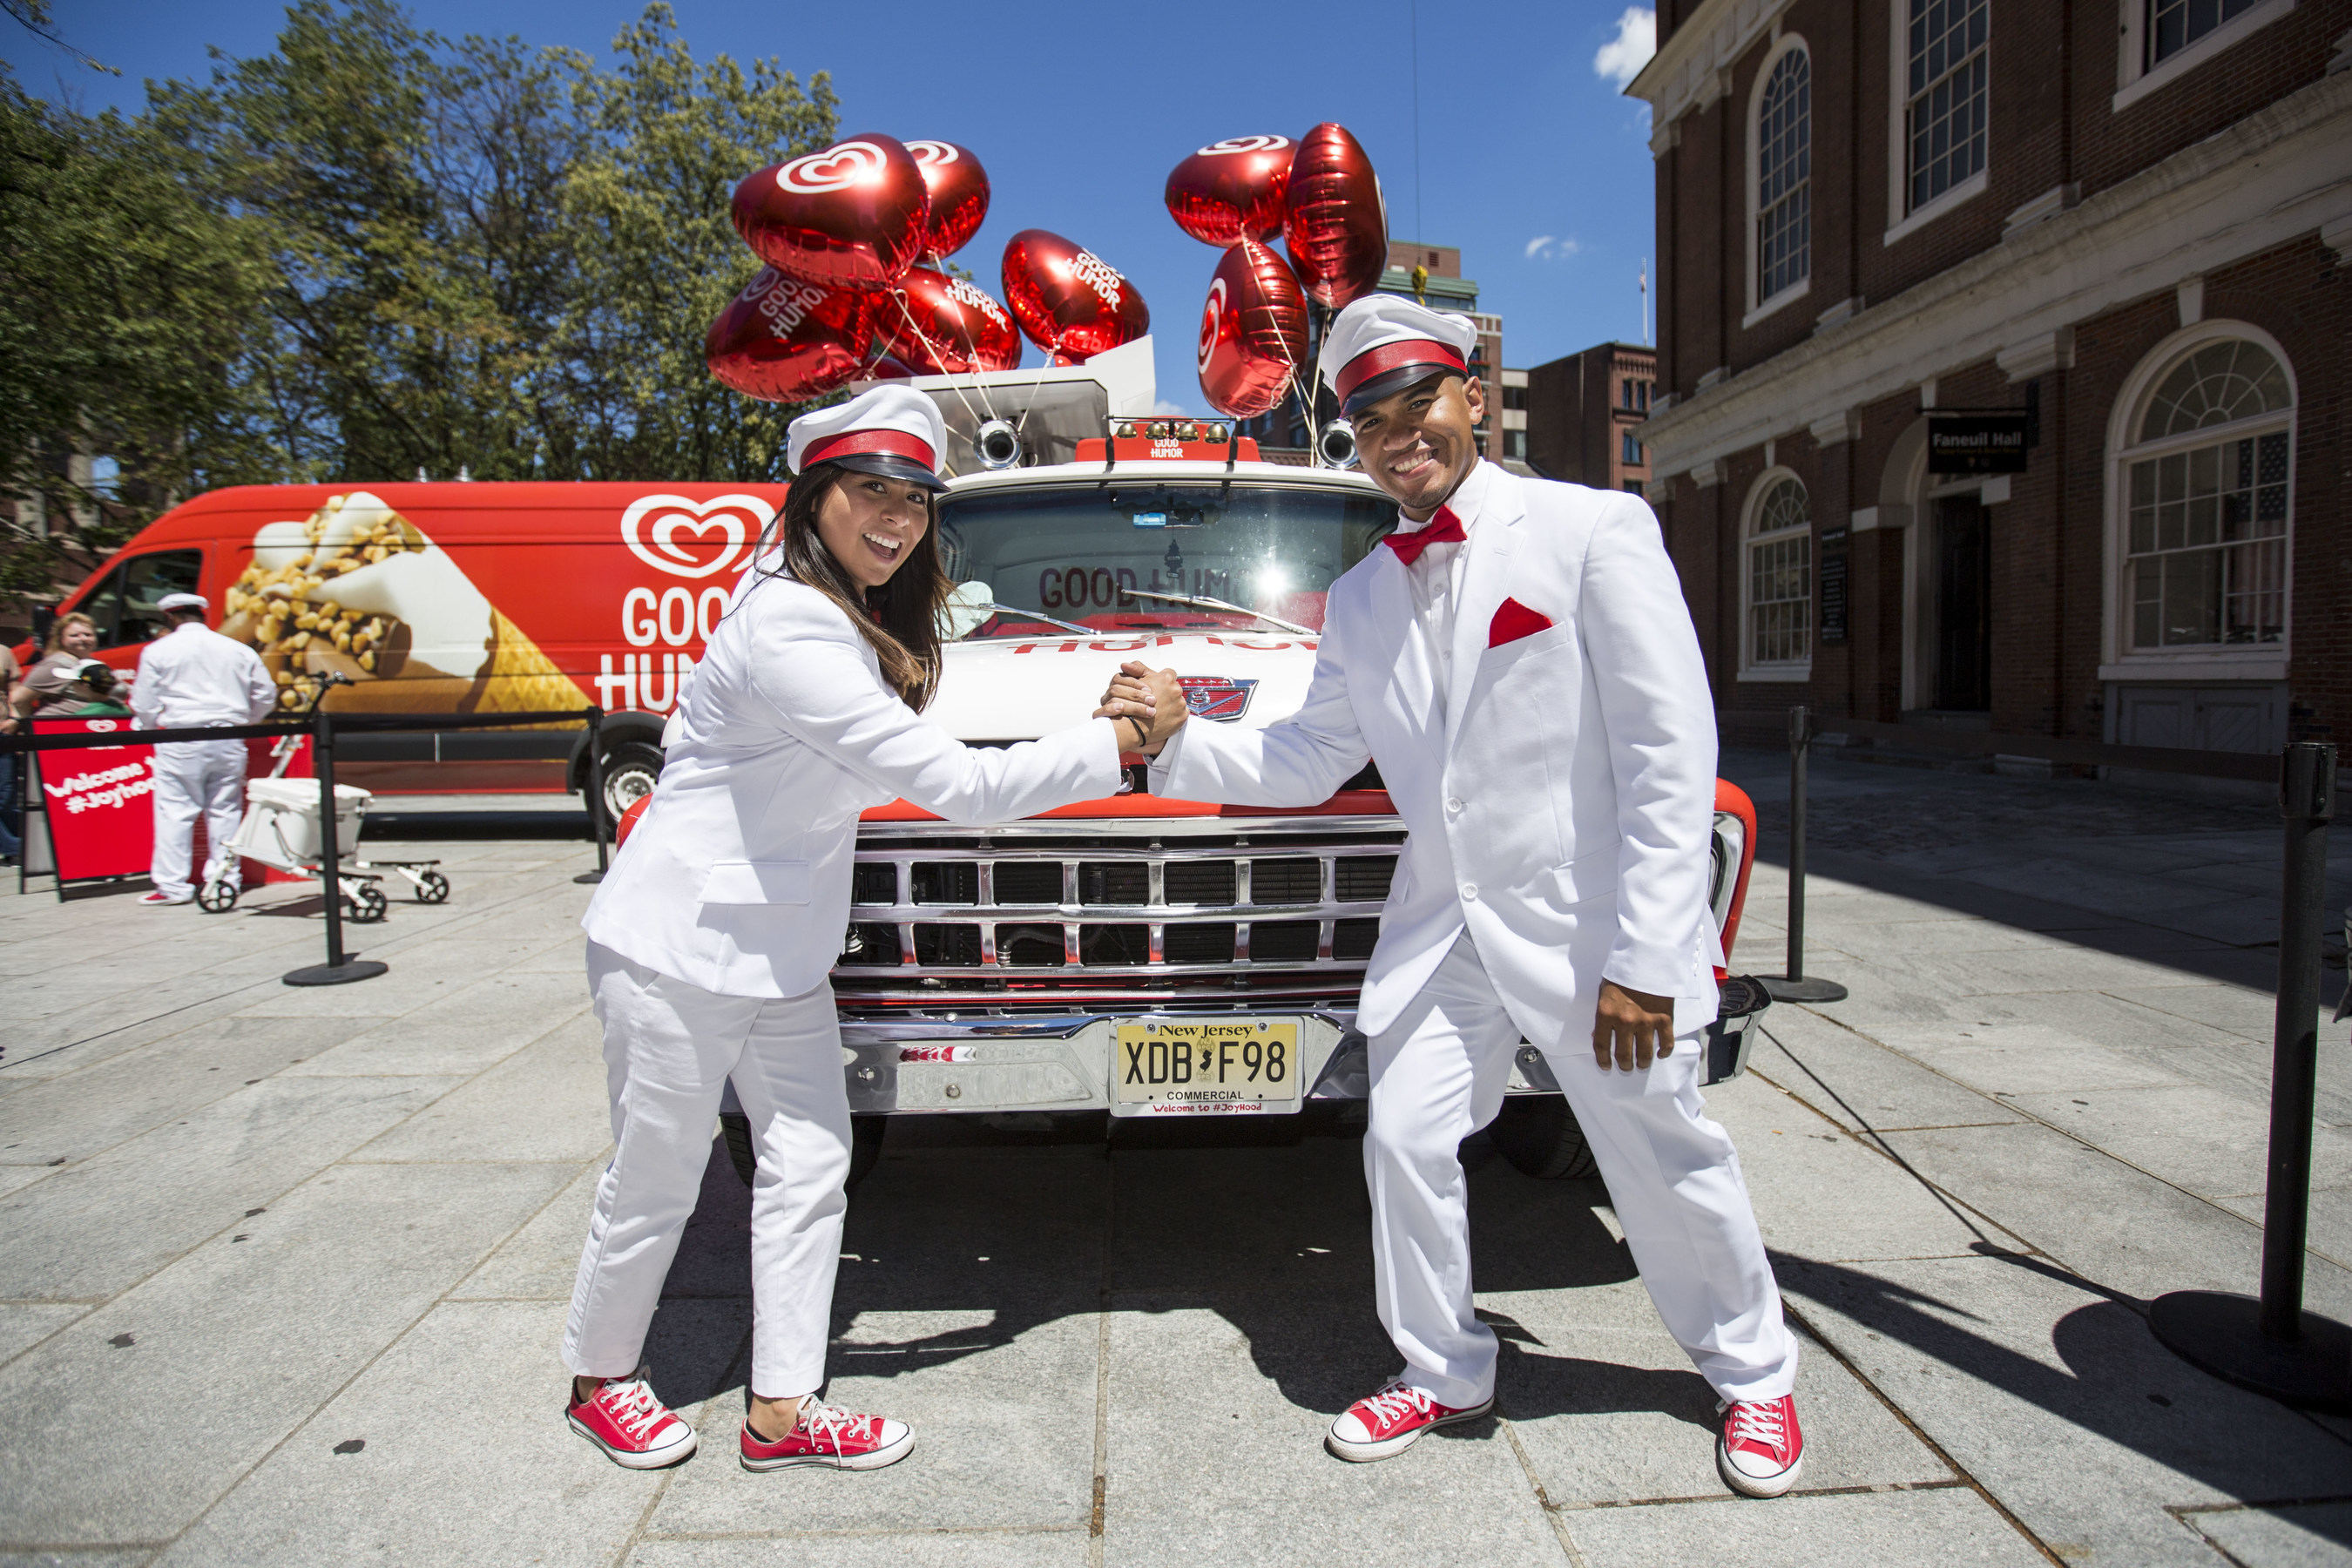 The Good Humor(R) Joy Squad and the Good Humor(R) Truck will surprise and delight Washington, D.C. from July 26 through August 16. Fans can follow Good Humor(R) all summer long on Foursquare for real-time updates on the Good Humor(R) Truck's location, or by tweeting at @GoodHumor to find out when The Good Humor(R) Truck will be visiting your neighborhood.